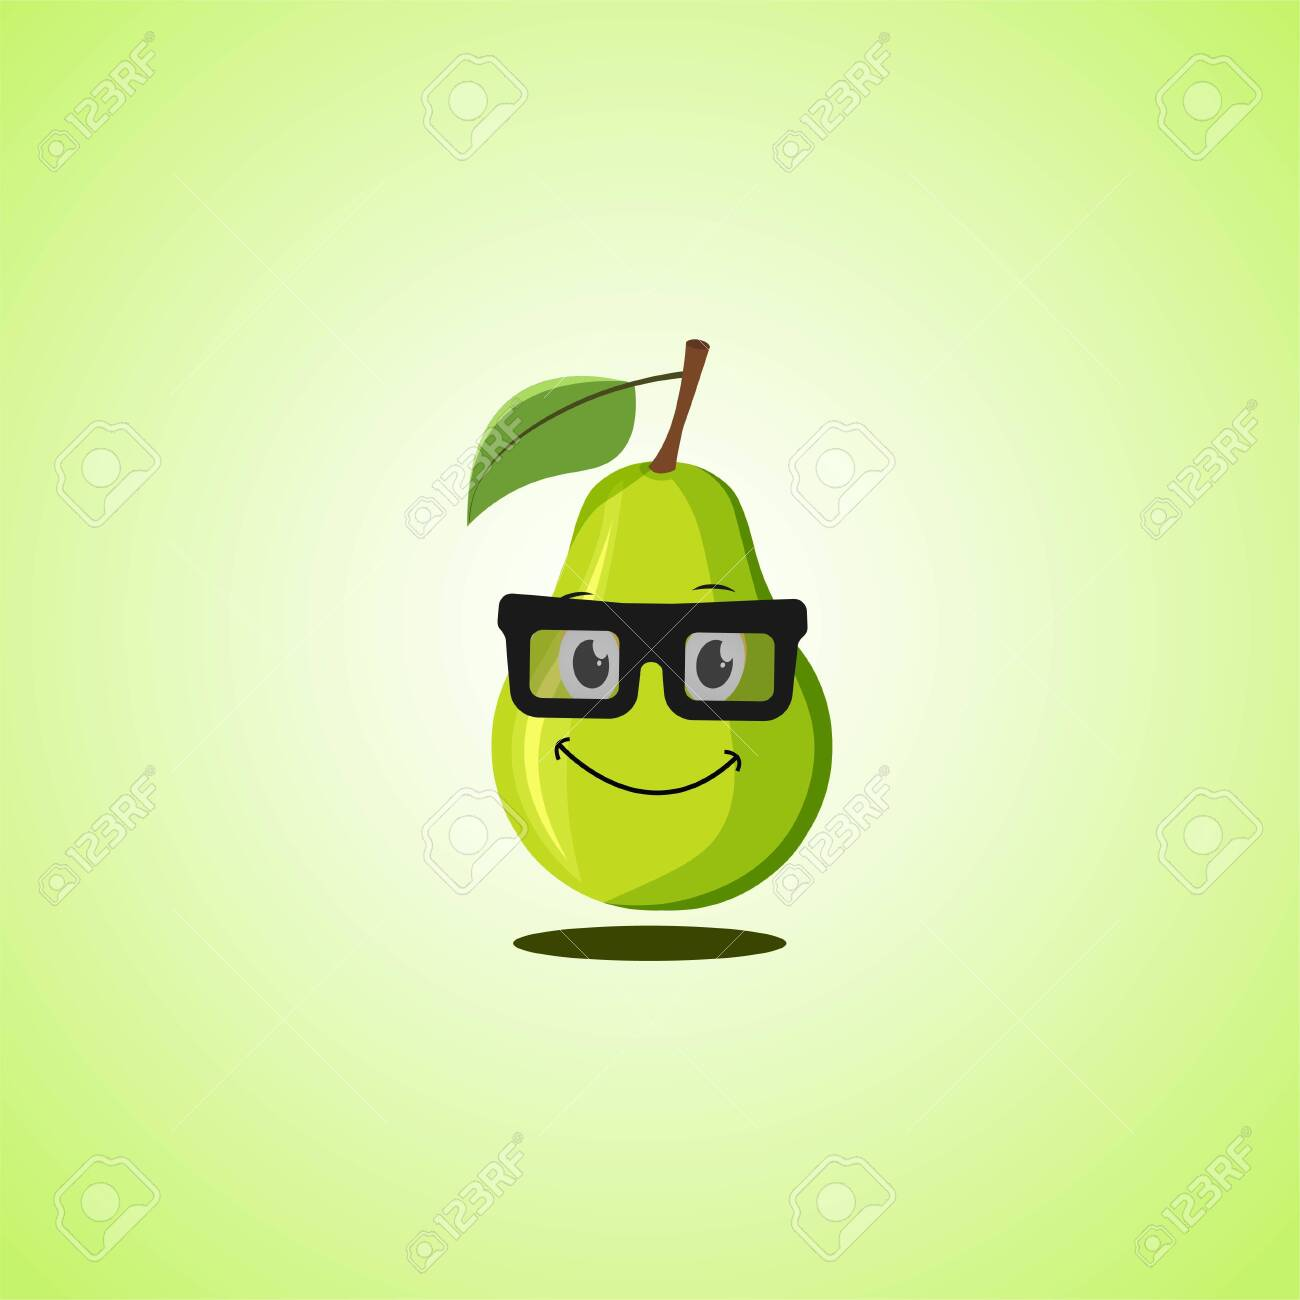 Yellow simple smile cartoon pear symbol in glasses. Cute smiling pear icon isolated on green background. Vector illustration EPS 10 - 146542049